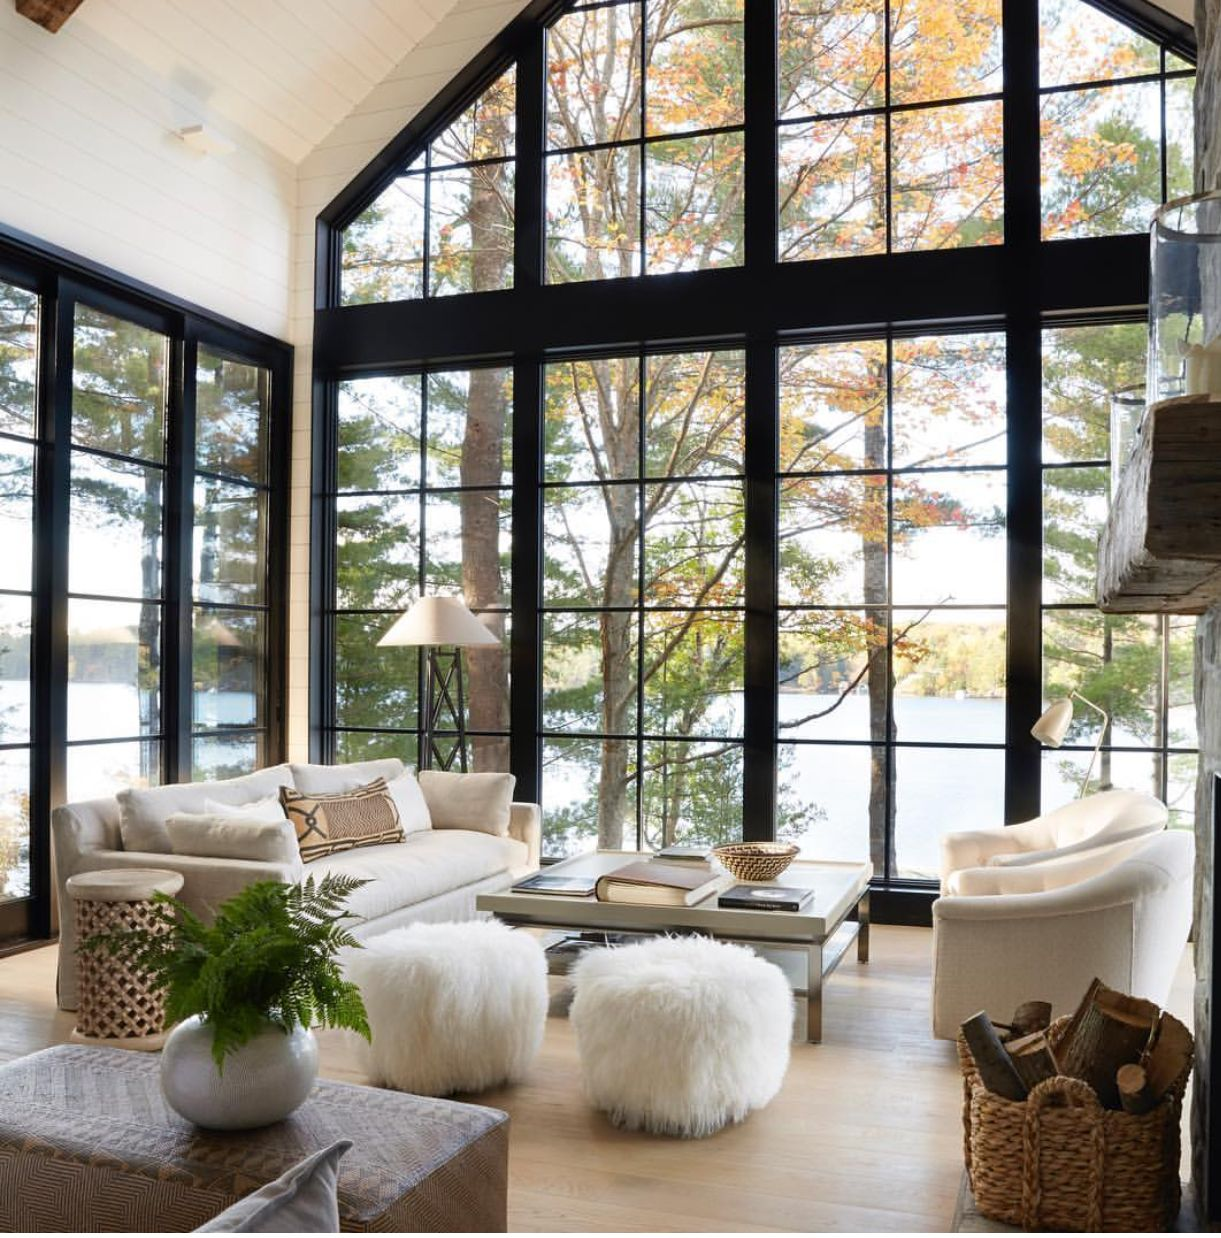 large windows // light and airy // living room // open concept // window wall | Open living room design, Dream house, House design